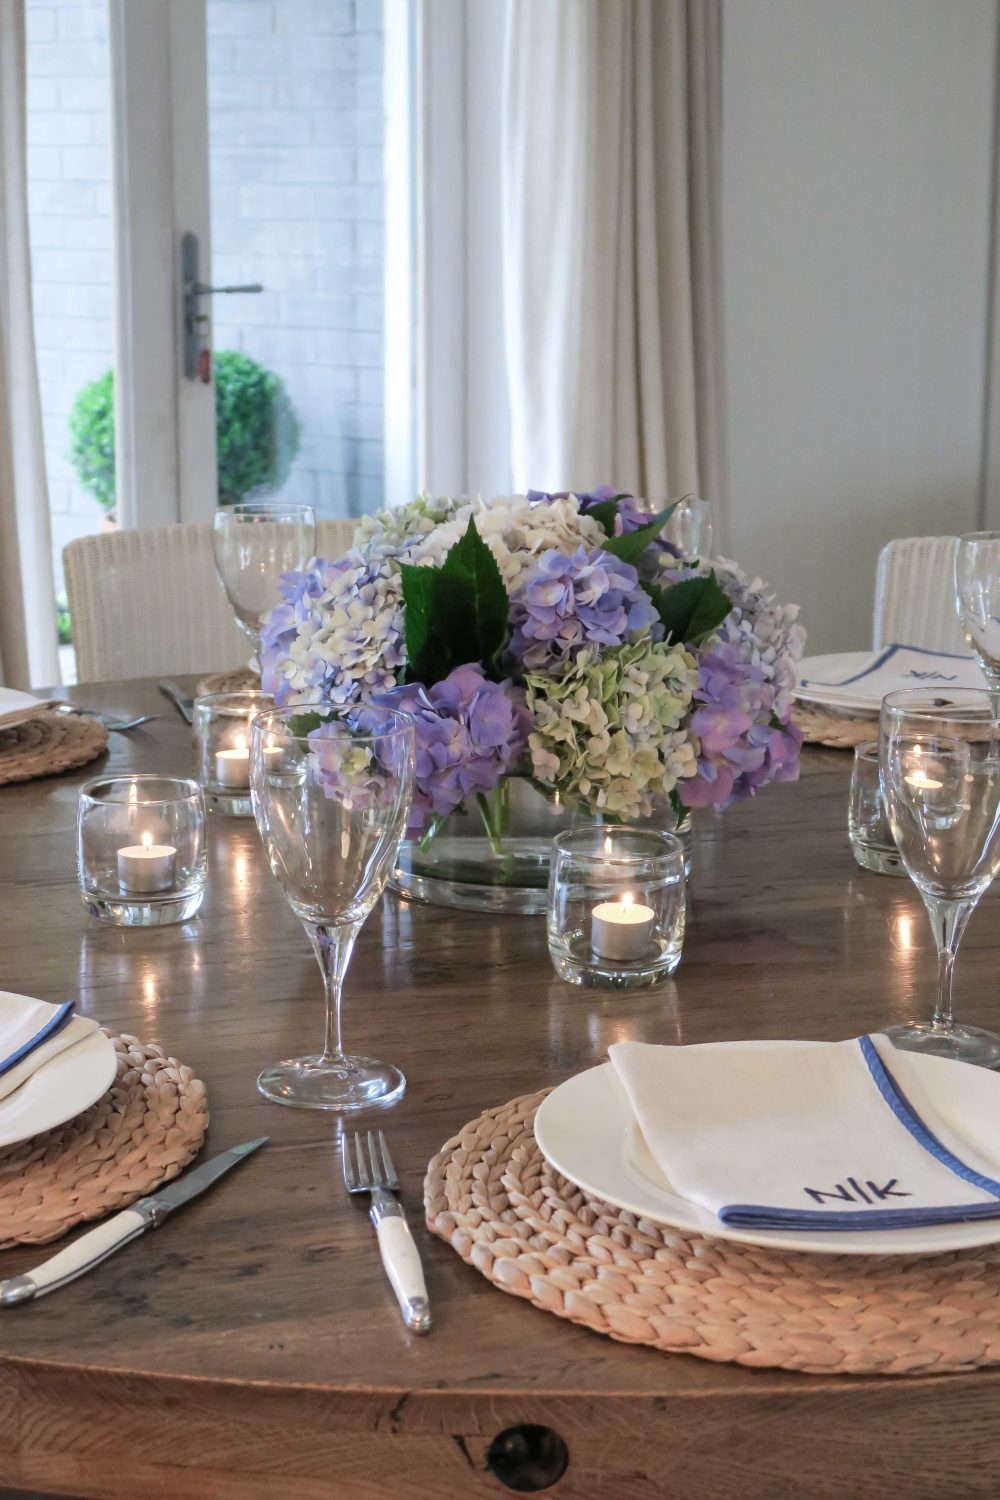 Cottonwood and Co - tips for easy and stress free entertaining - hydrangeas